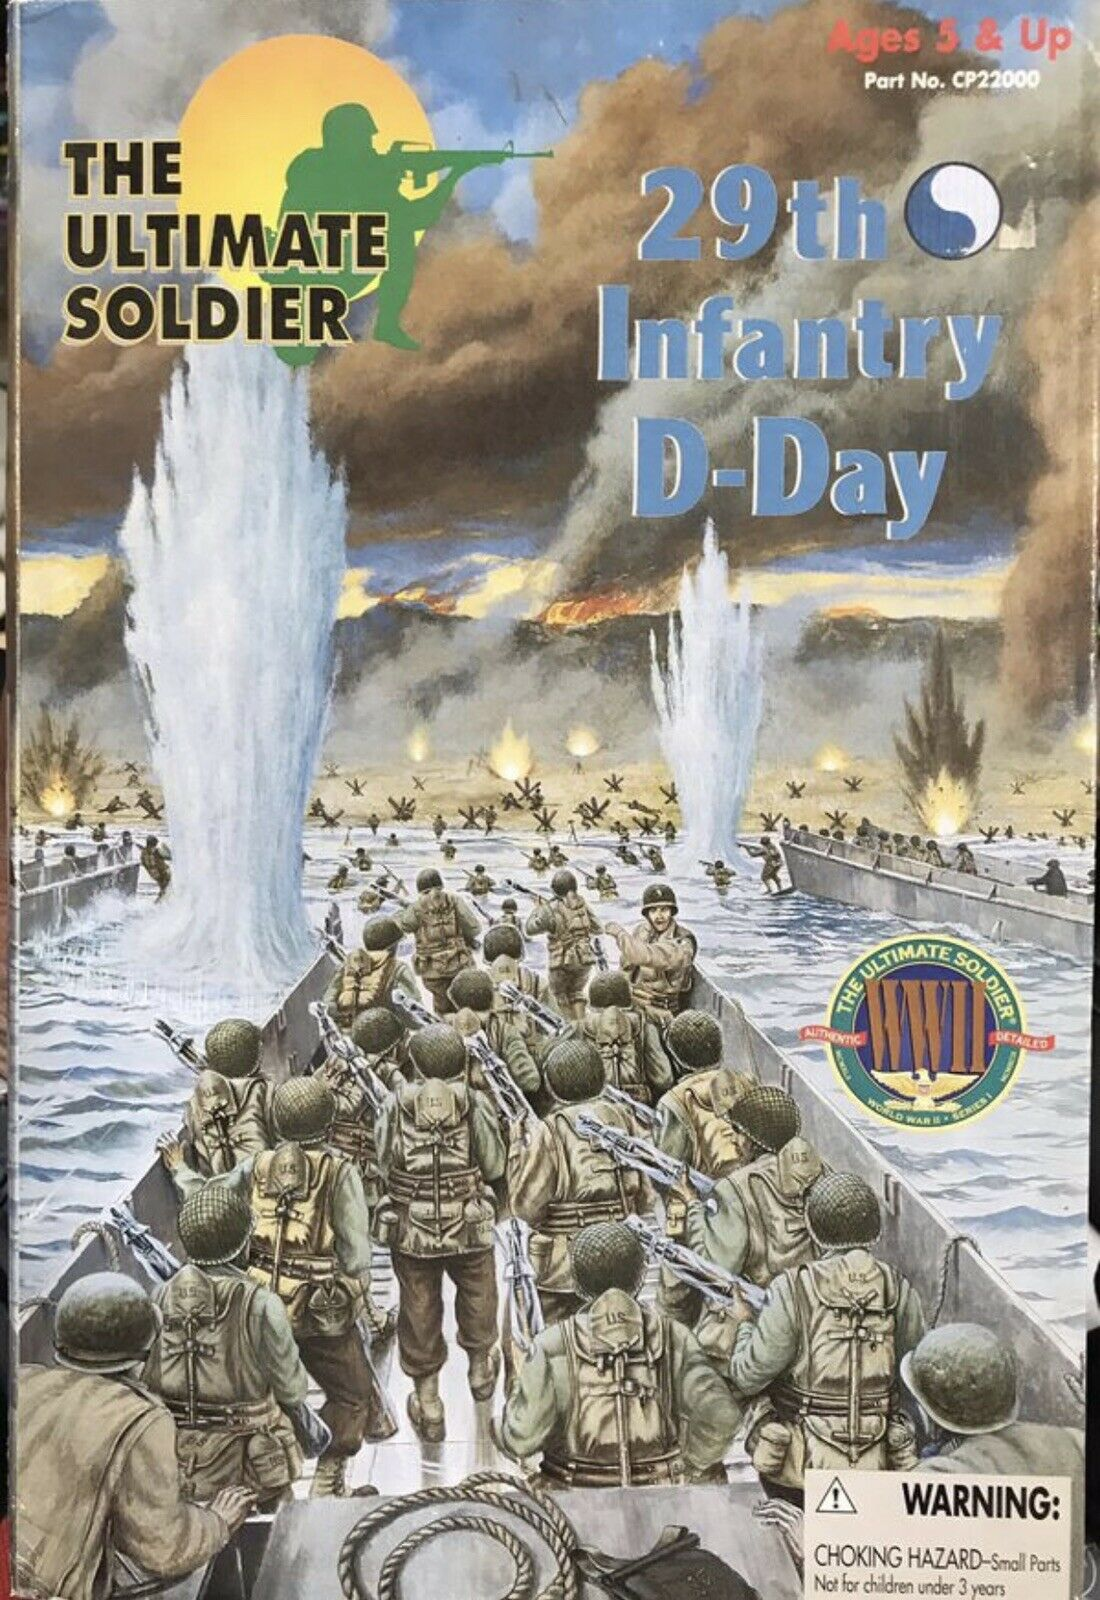 The Ultimate Soldier 1 6 29th Infantry D-Day Military Vintage Figure  New In Box